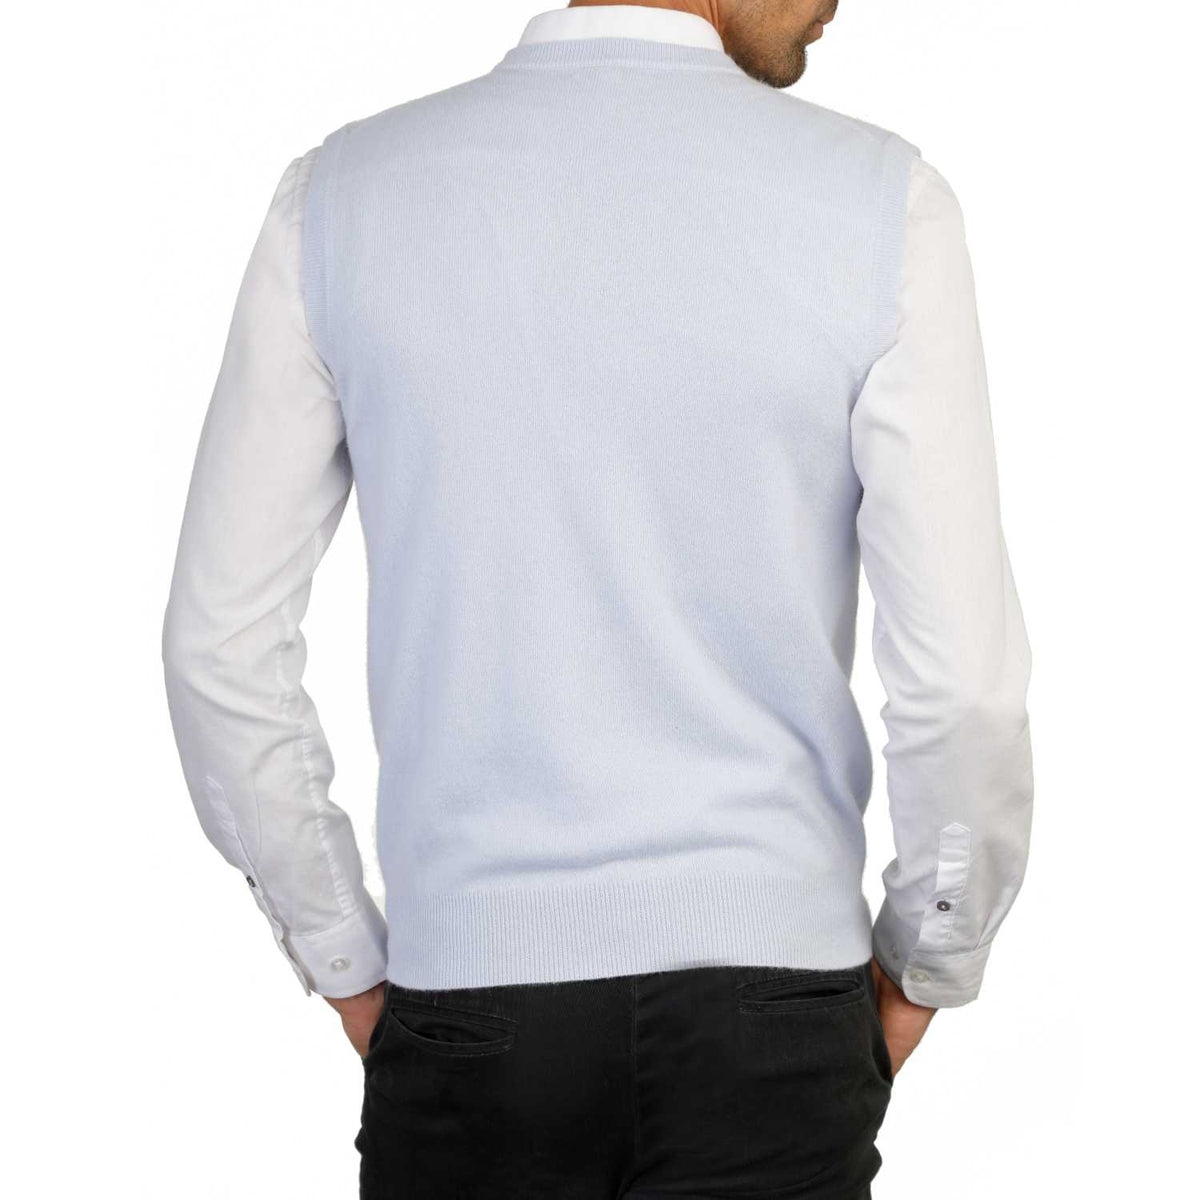 Mens Pale Blue Cashmere Sleeveless Vest Sweater | Back | Shop at The Cashmere Choice | London